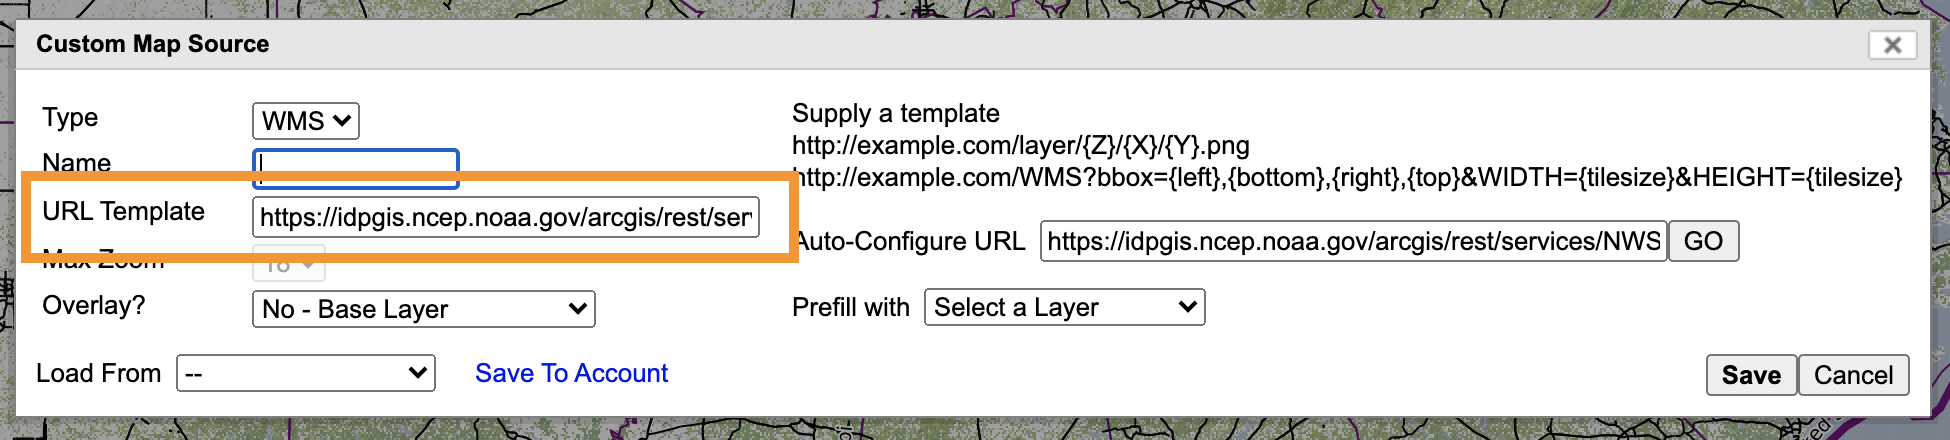 in the custom source edit box, the field for URL template has an orange box around it to make it obvious